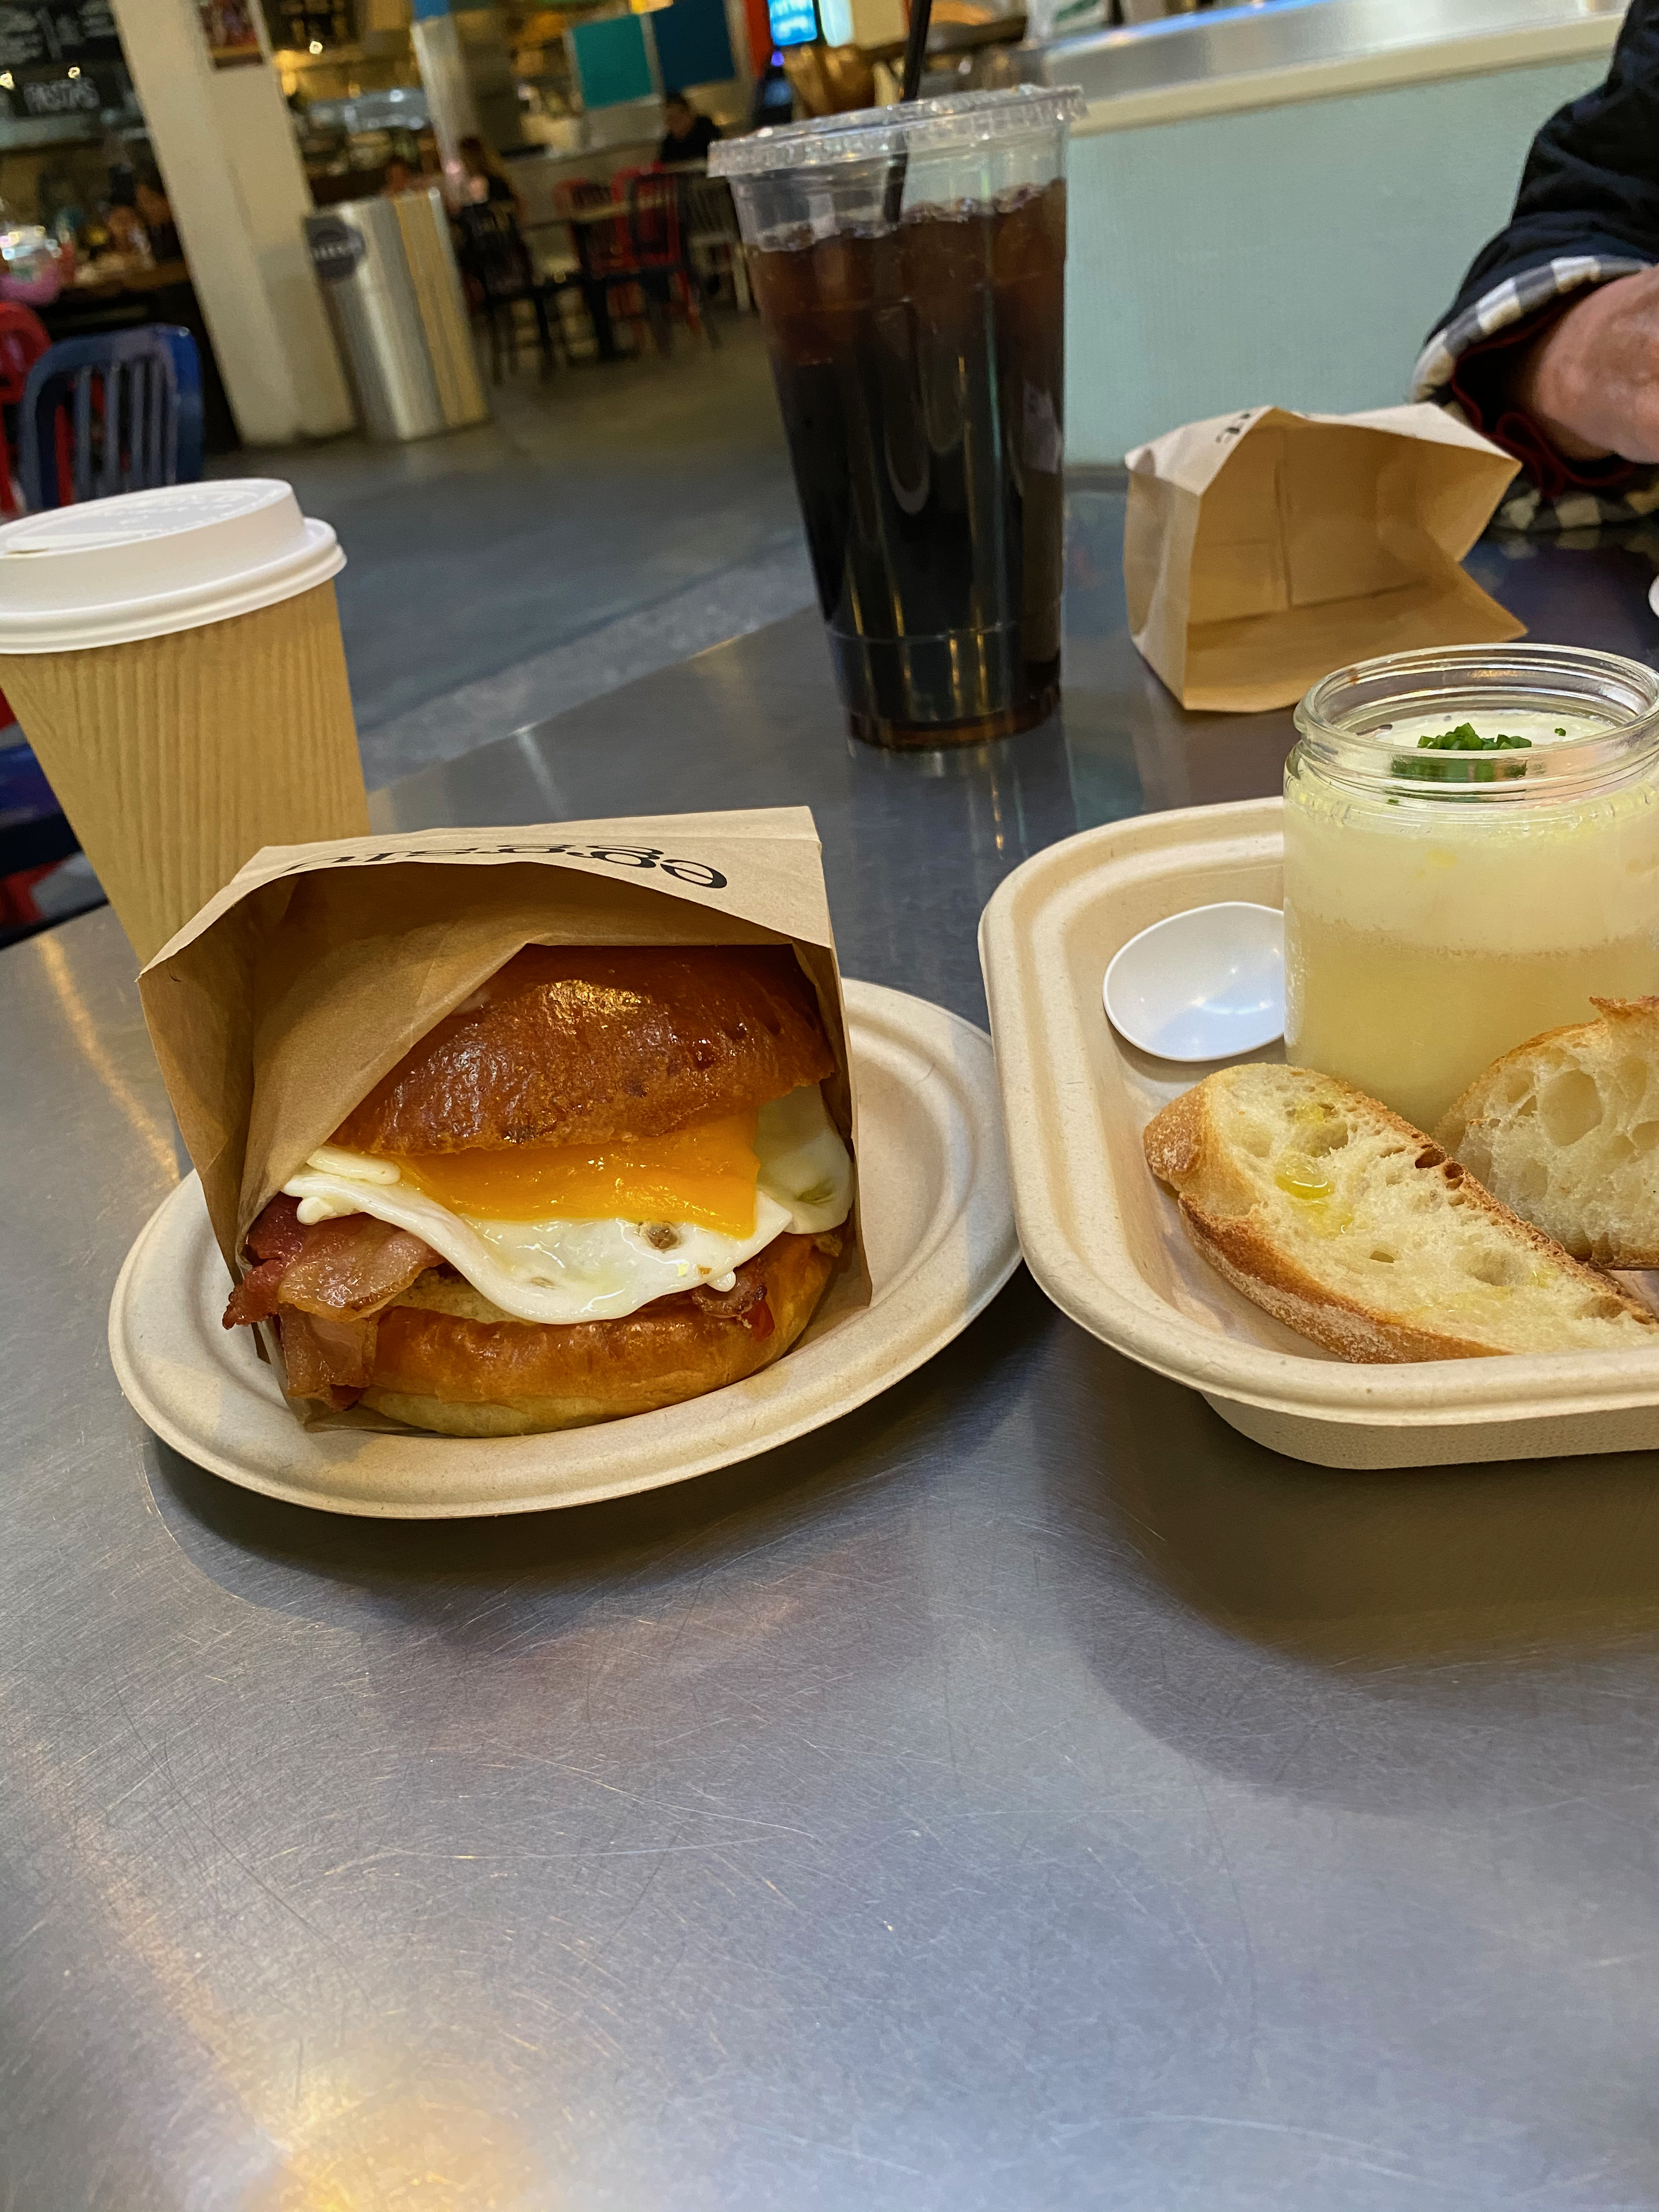 Enjoying a breakfast at Eggslut in Grand Central Market in Downtown LA